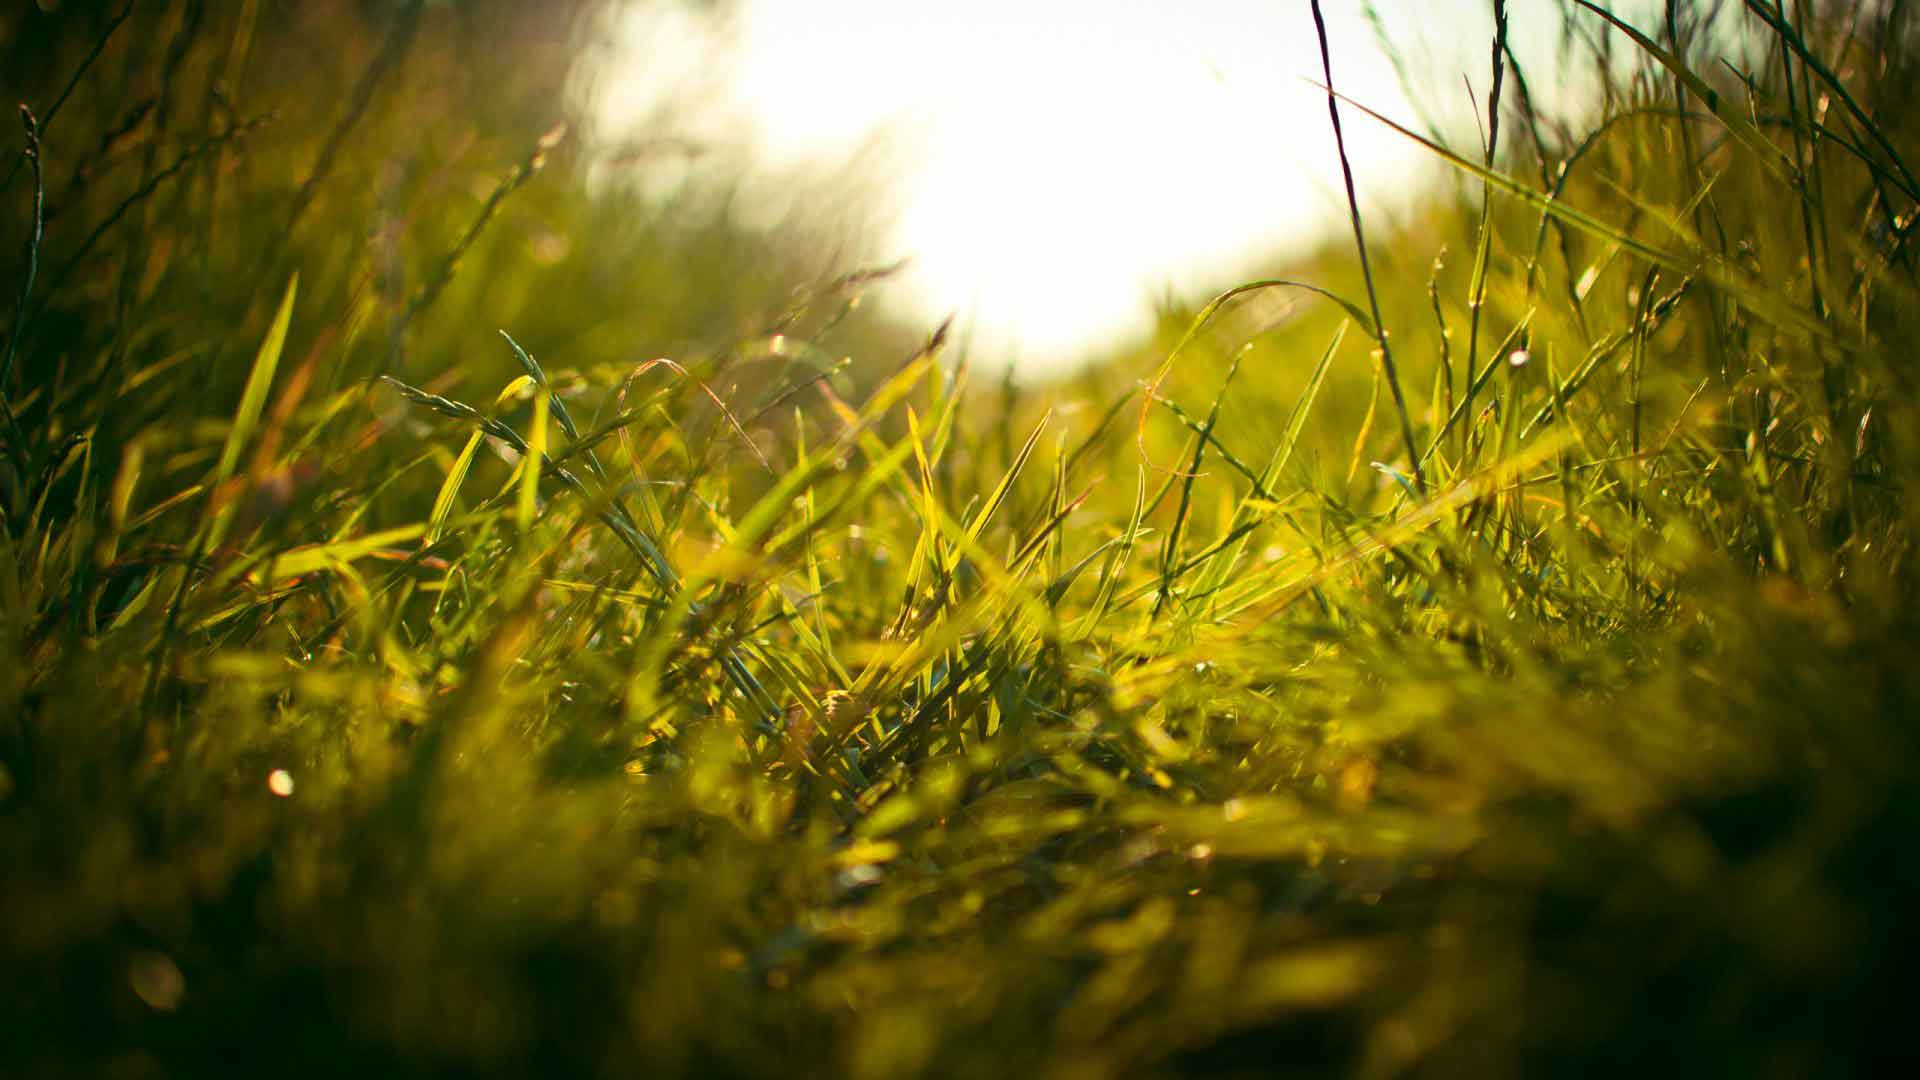 Closeup of grass in summer or spring field